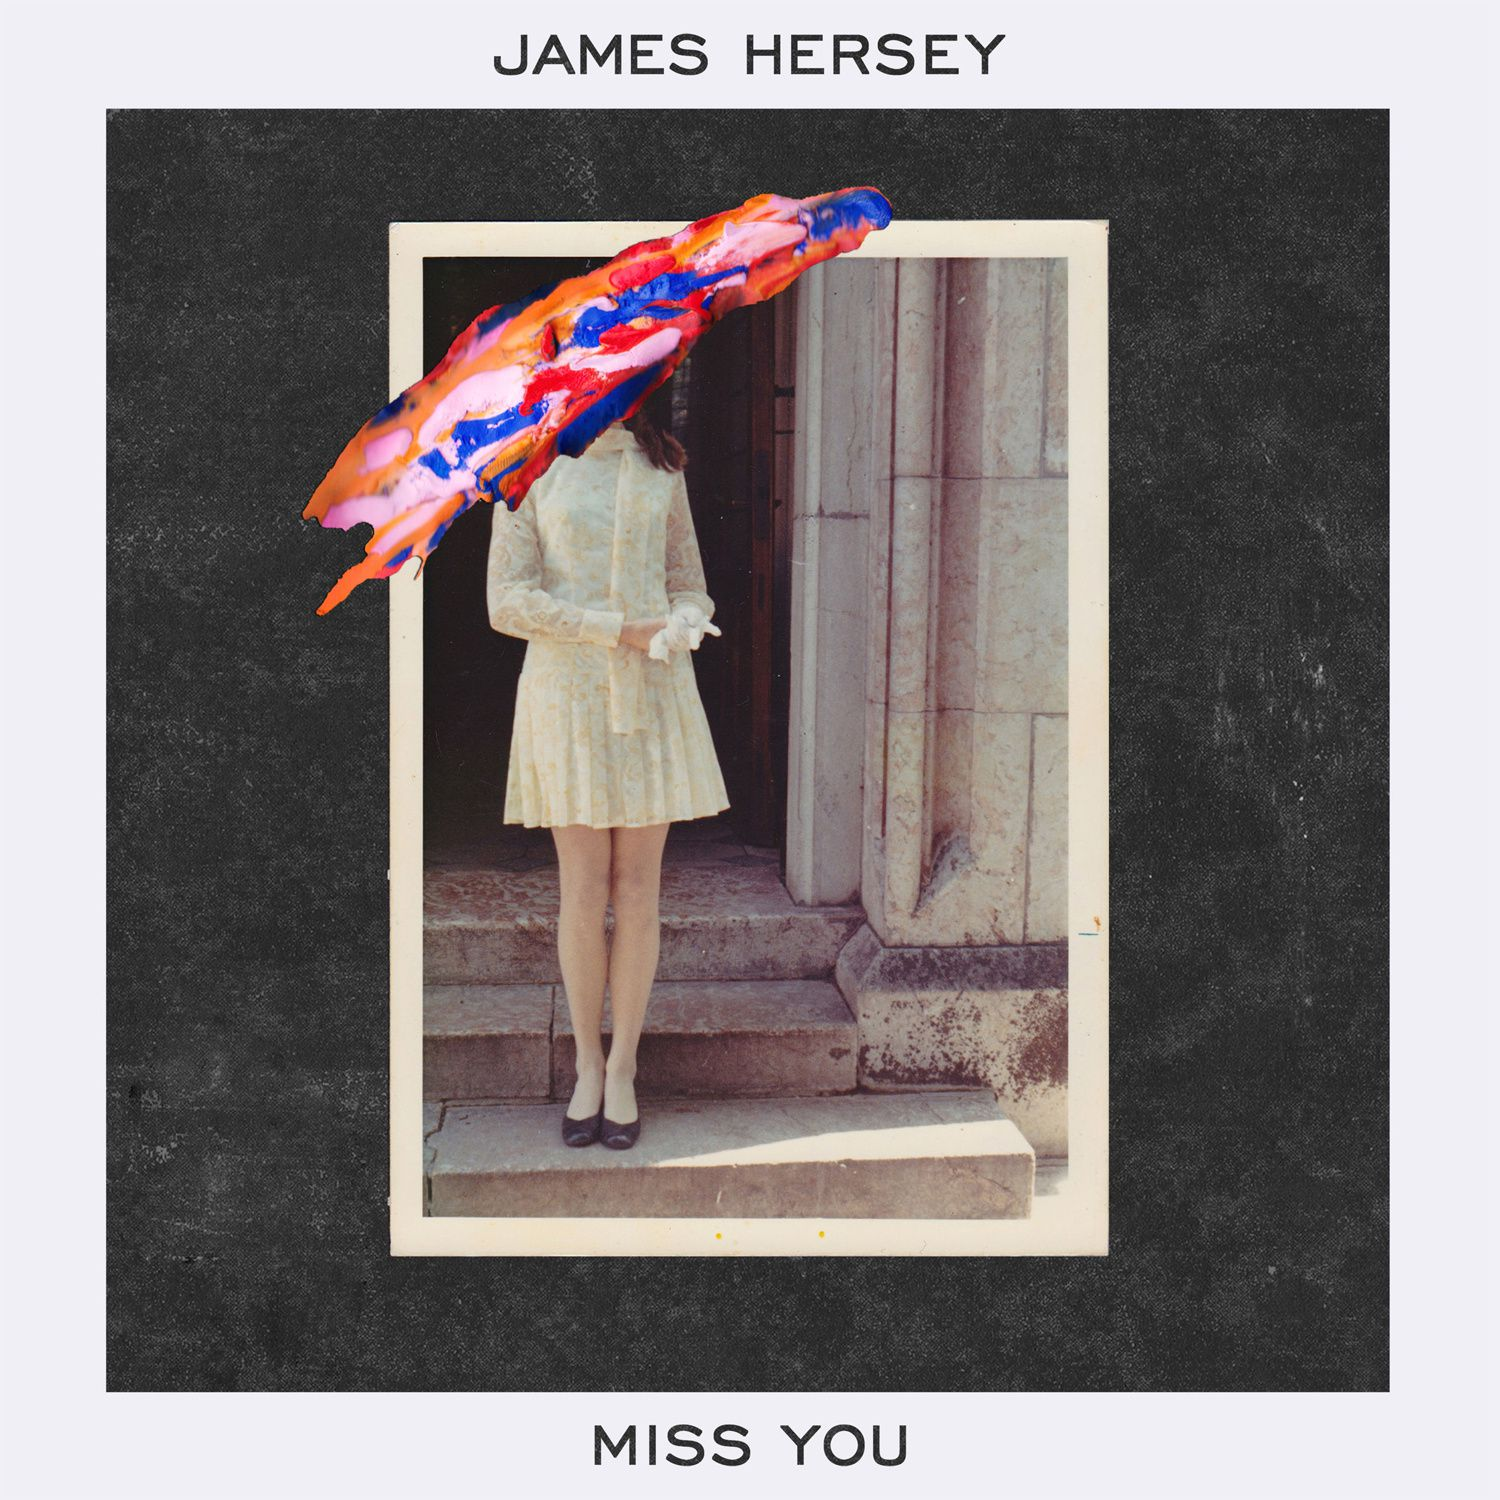 james hersey, miss you, pages, electro, vevo, glassnote